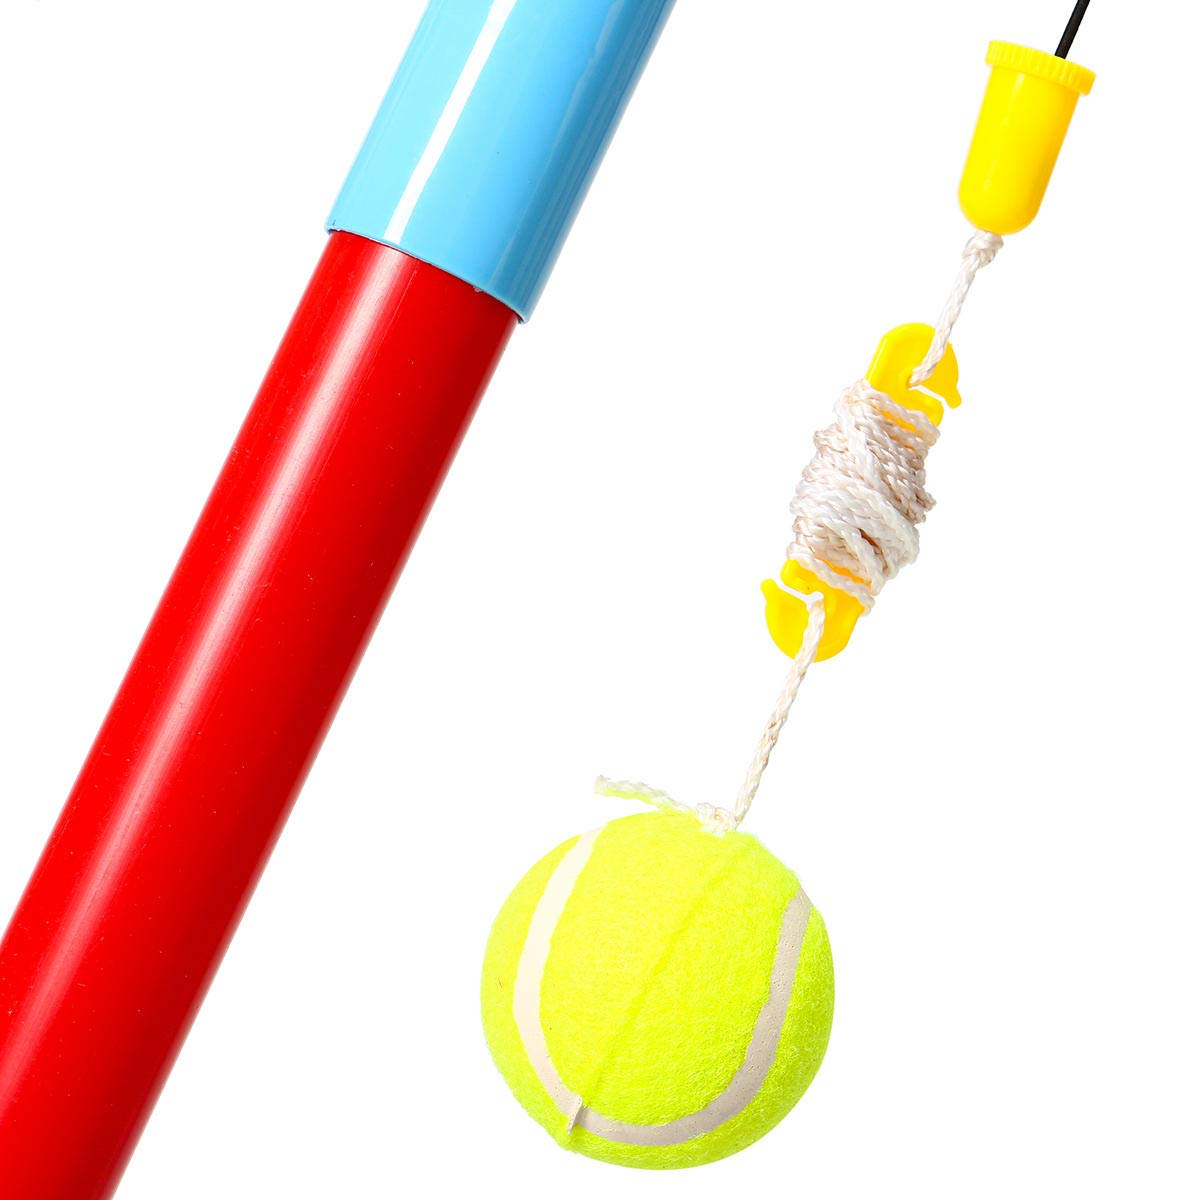 Anddoa Portable Tetherball Toys Kids Ball Game Children Outdoor Sport Play Fun Ball Set by Anddoa (Image #7)